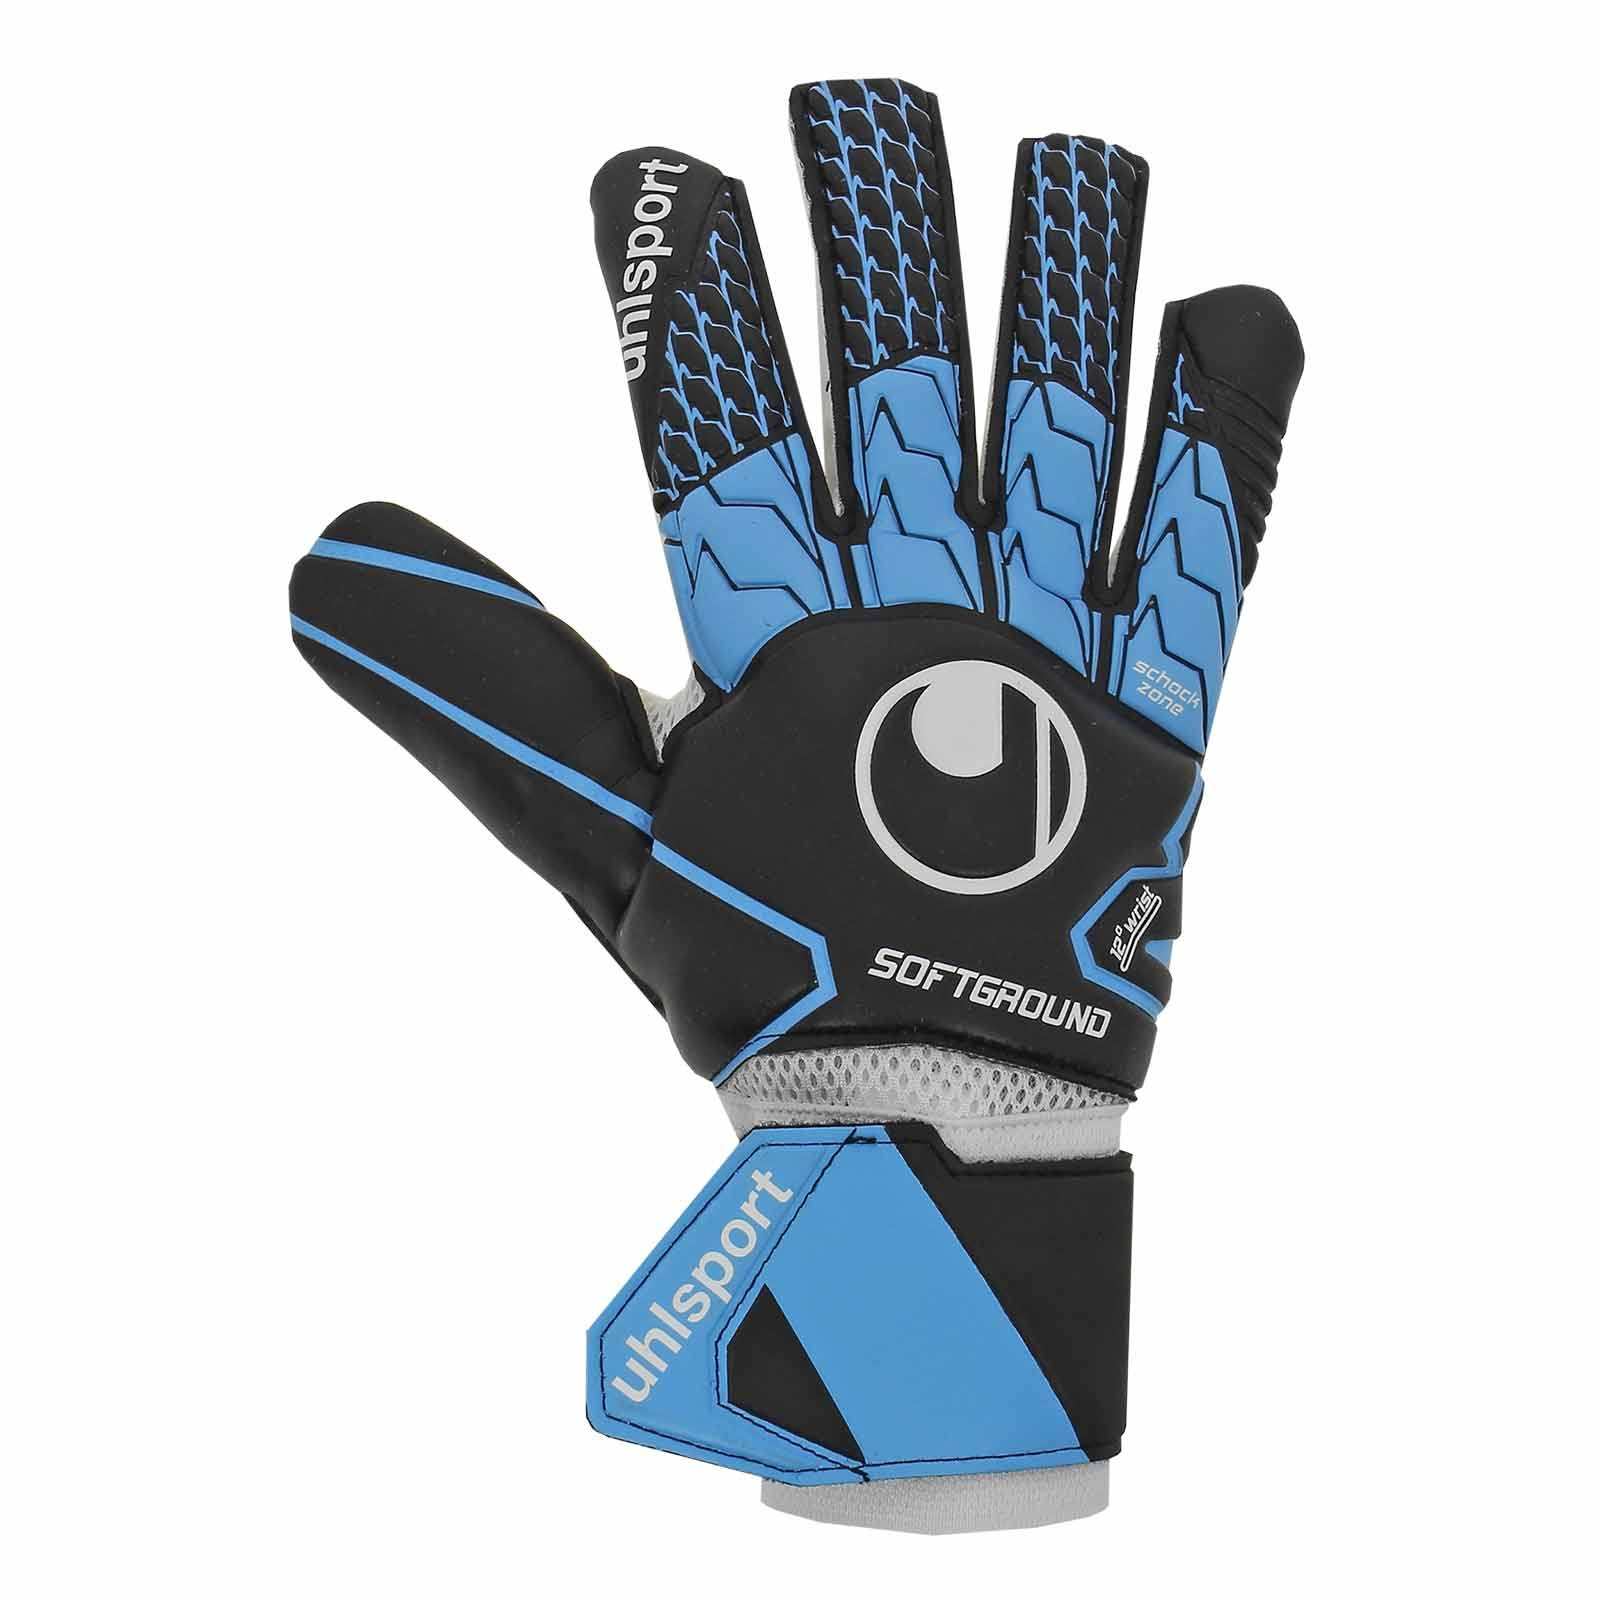 Uhlsport-SOFT-HN-Competition-Gant-de-Gardien-Keeper-Gloves-Bleu-noir miniature 1